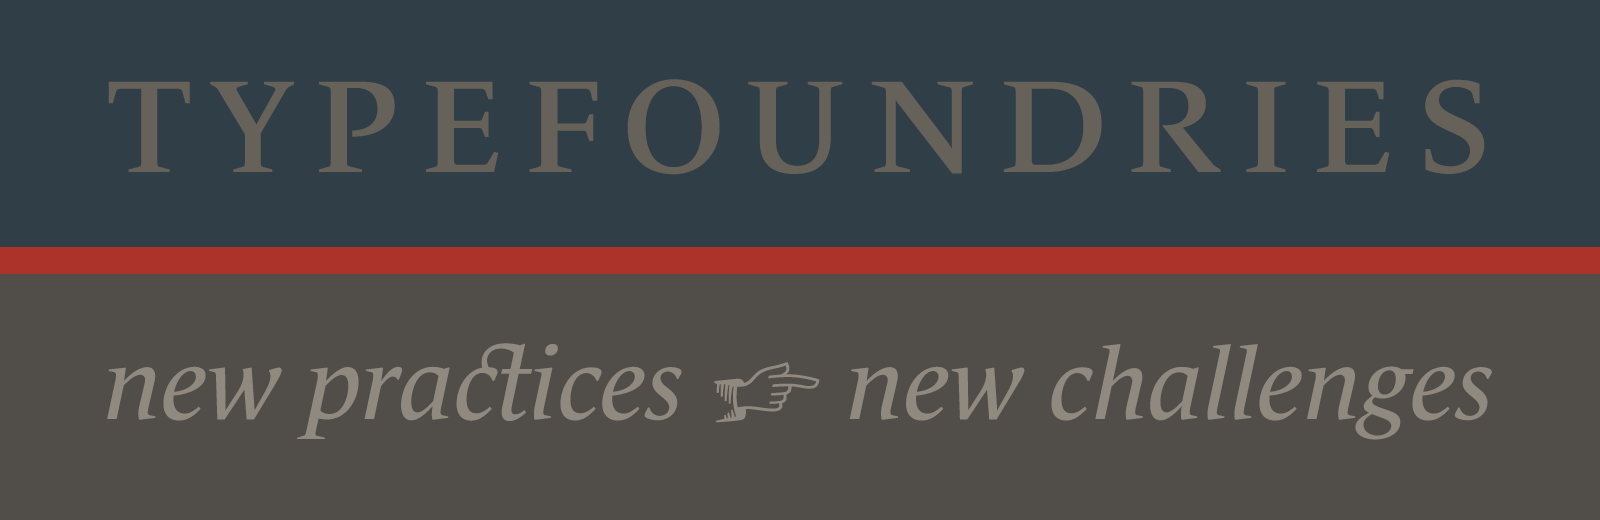 Typefoundries: new practices, new challenges